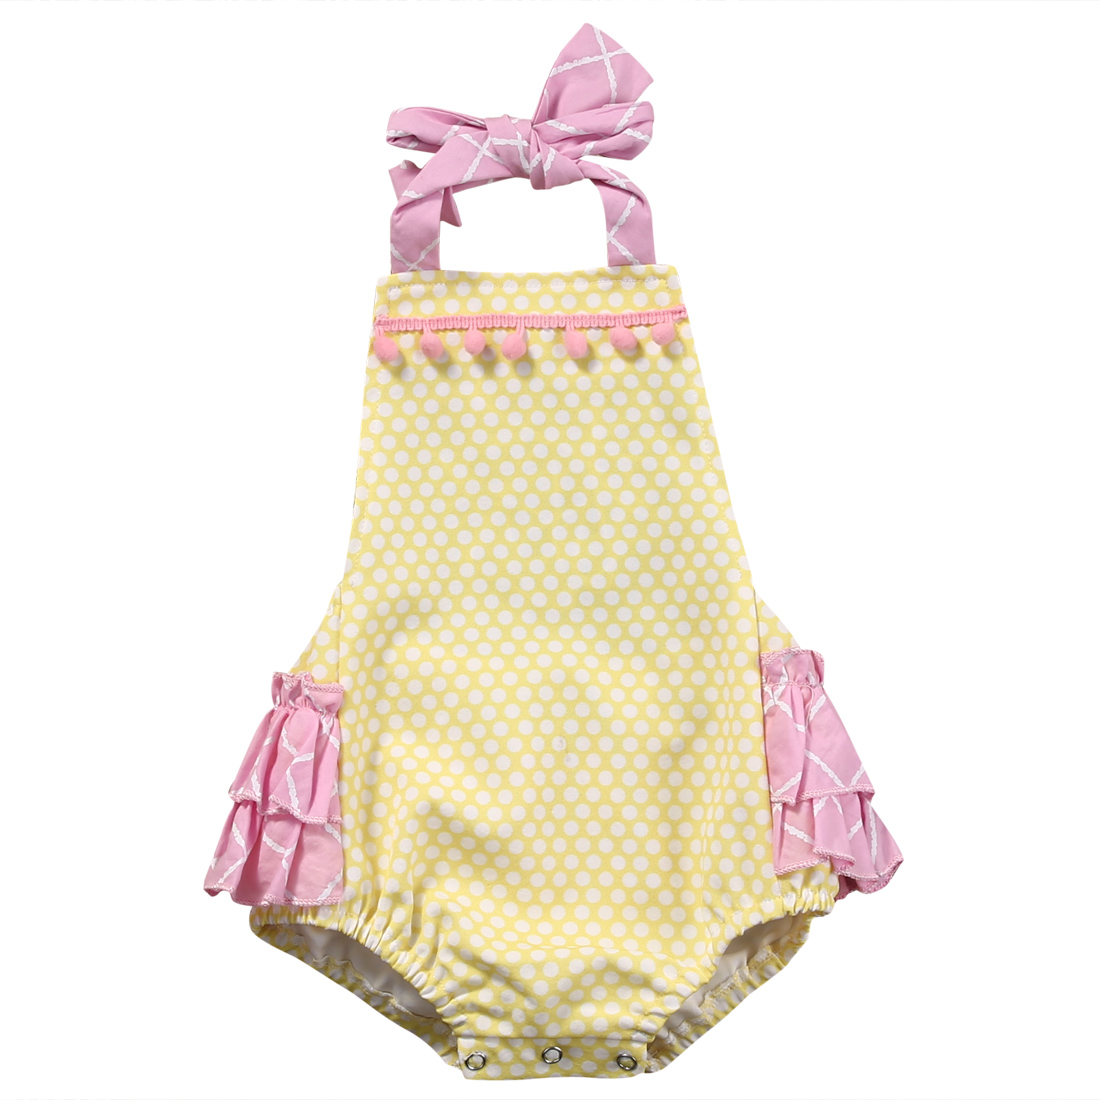 Cute Newborn Baby Girls Sleeveless Yellow Plaid Ruffle Romper Jumpsuit Clothes Outfits Sunsuit one pieces cute newborn infant baby girls sleeveless black floral romper outfits summer sunsuit clothes